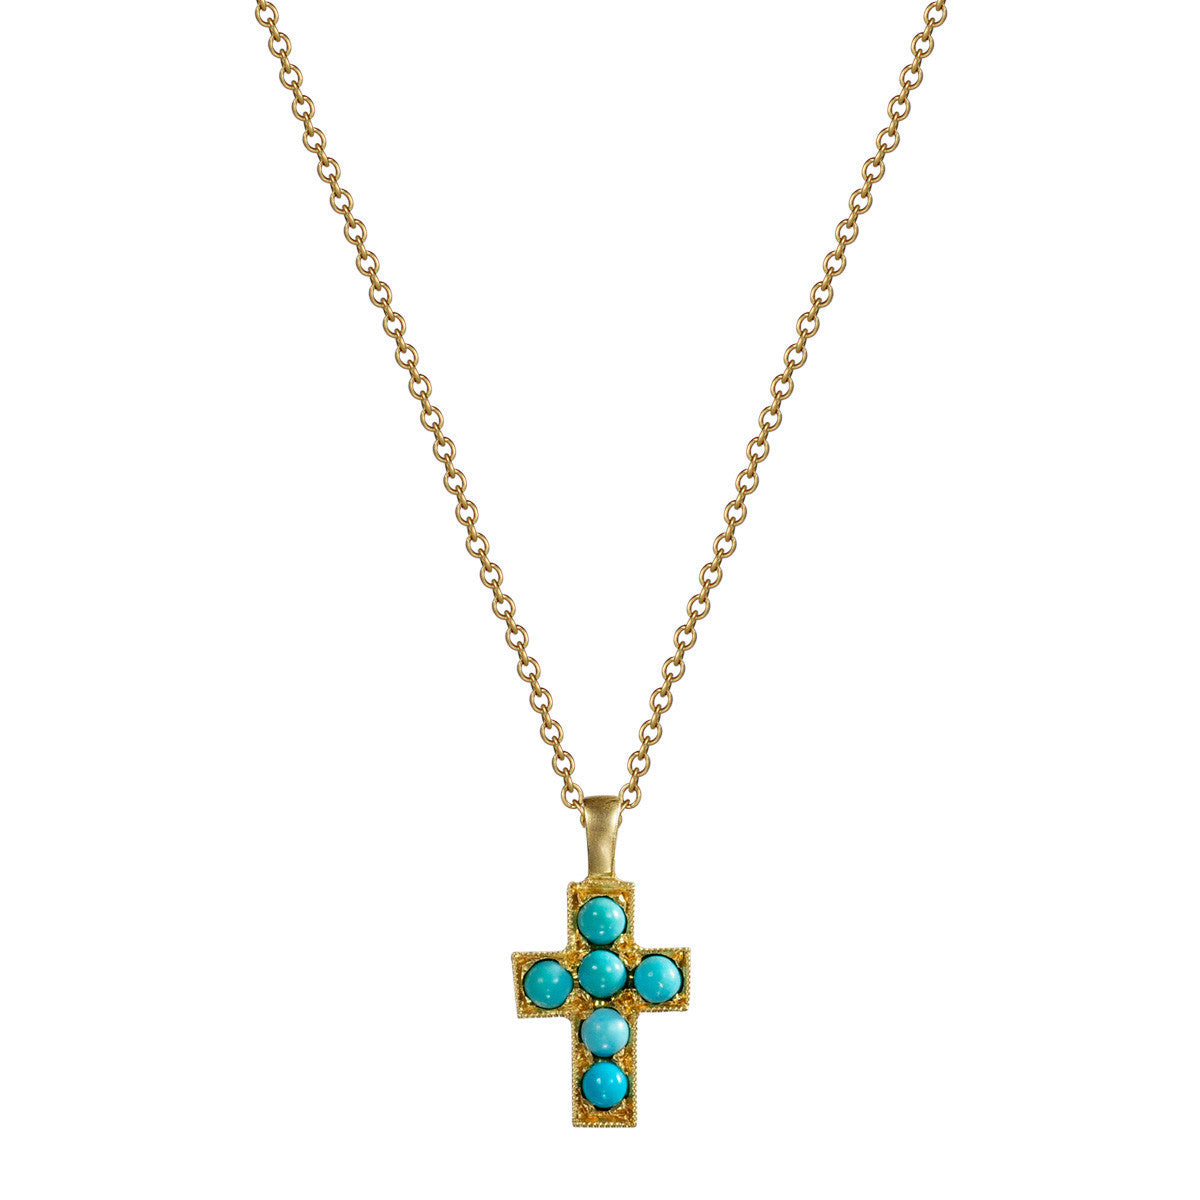 18k gold cross pendant with turquoise stones mero 18k gold cross pendant with turquoise stones audiocablefo